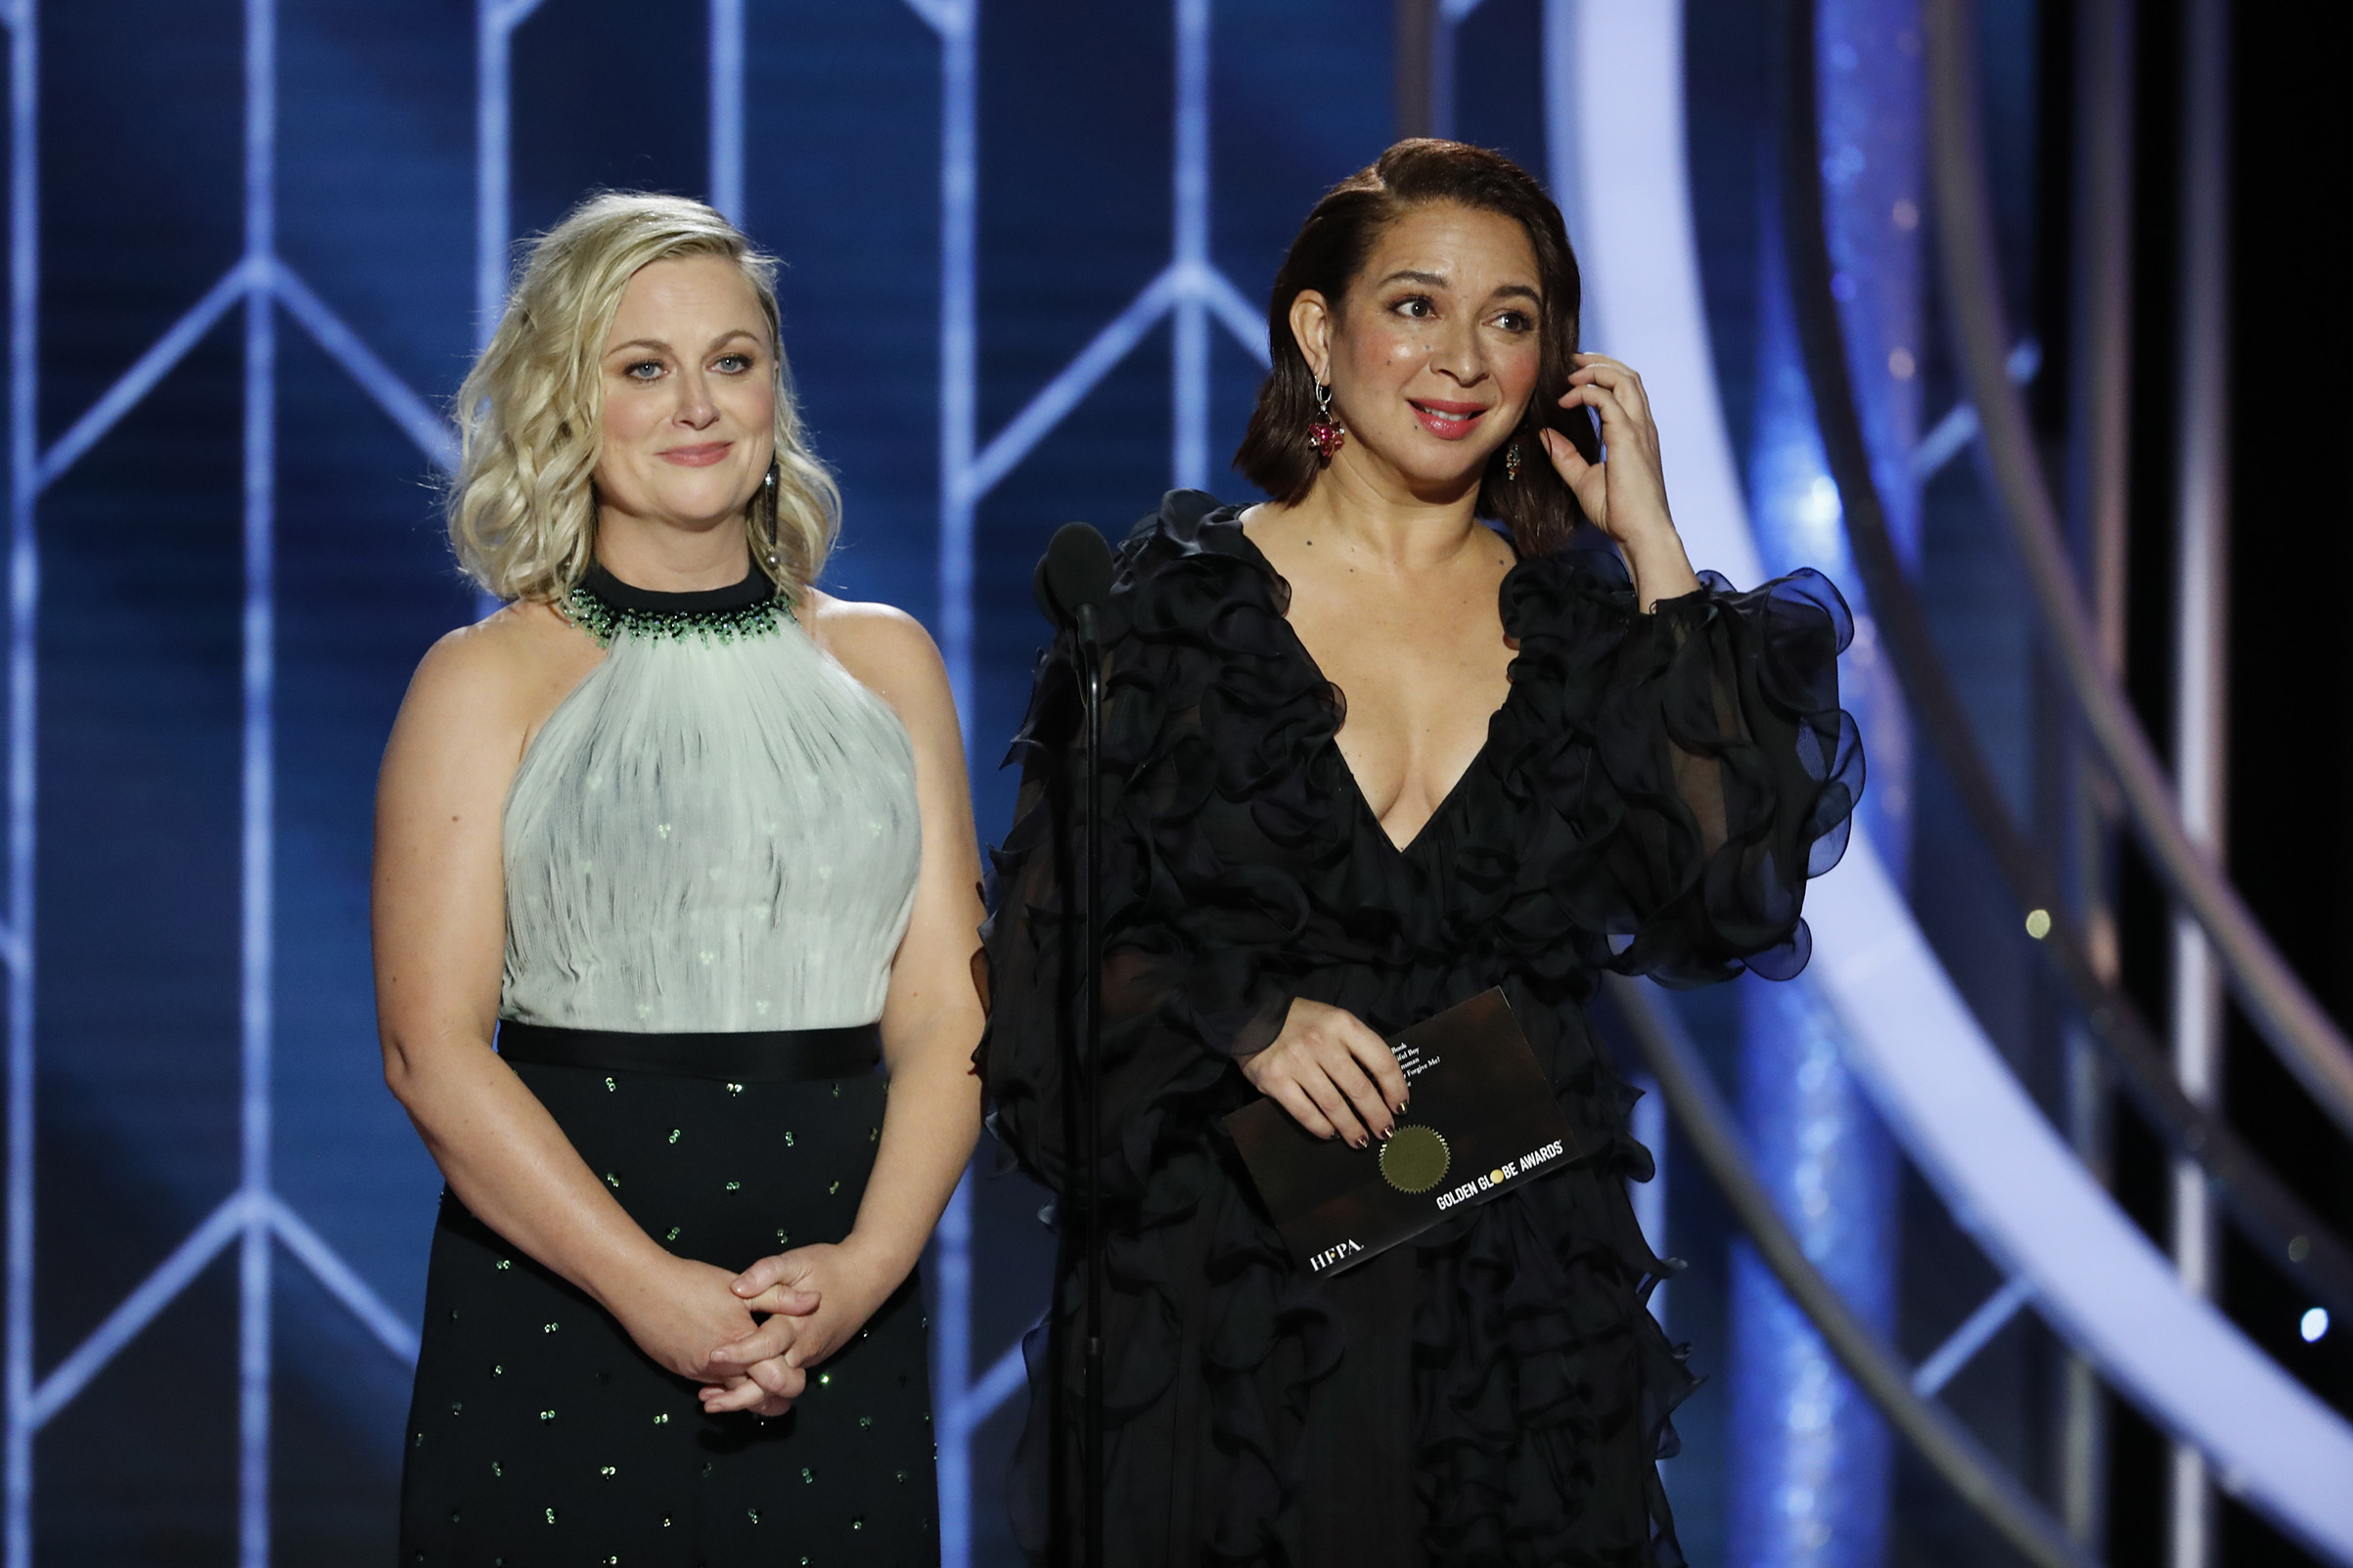 Presenters Amy Poehler and Maya Rudolph speak onstage during the 76th Annual Golden Globe Awards.